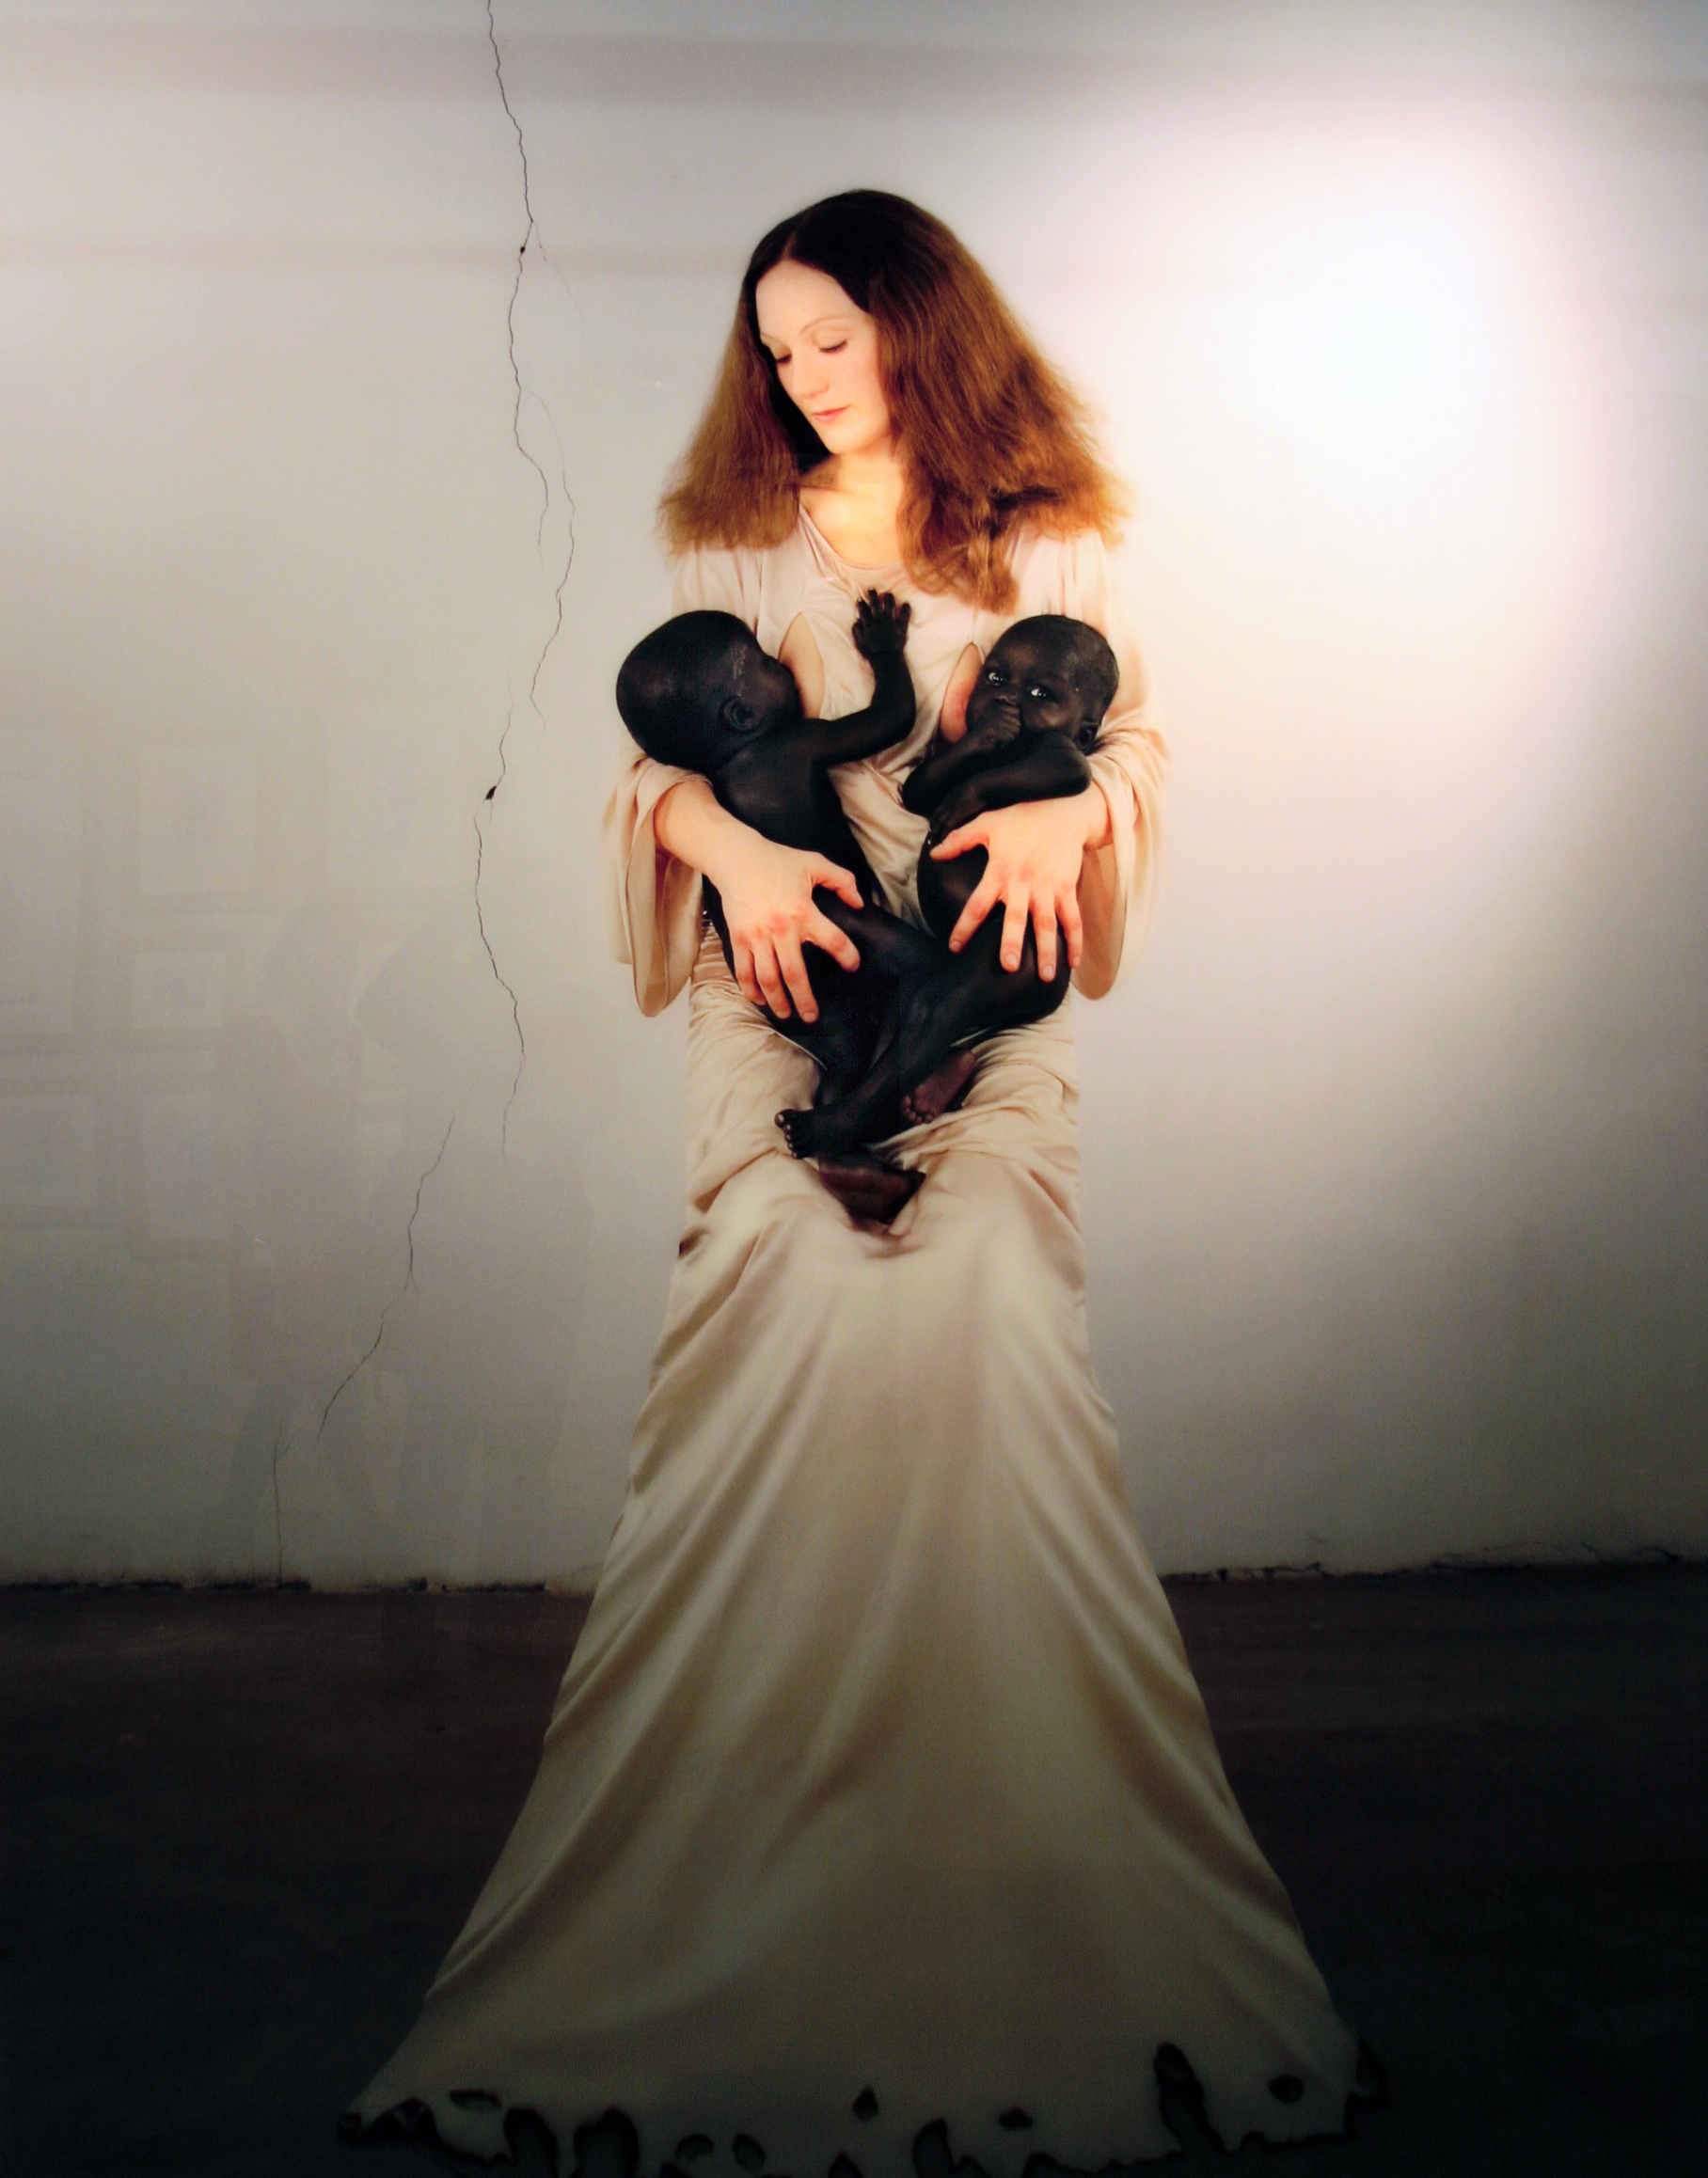 Image of Vanessa Beecroft from Wikidata